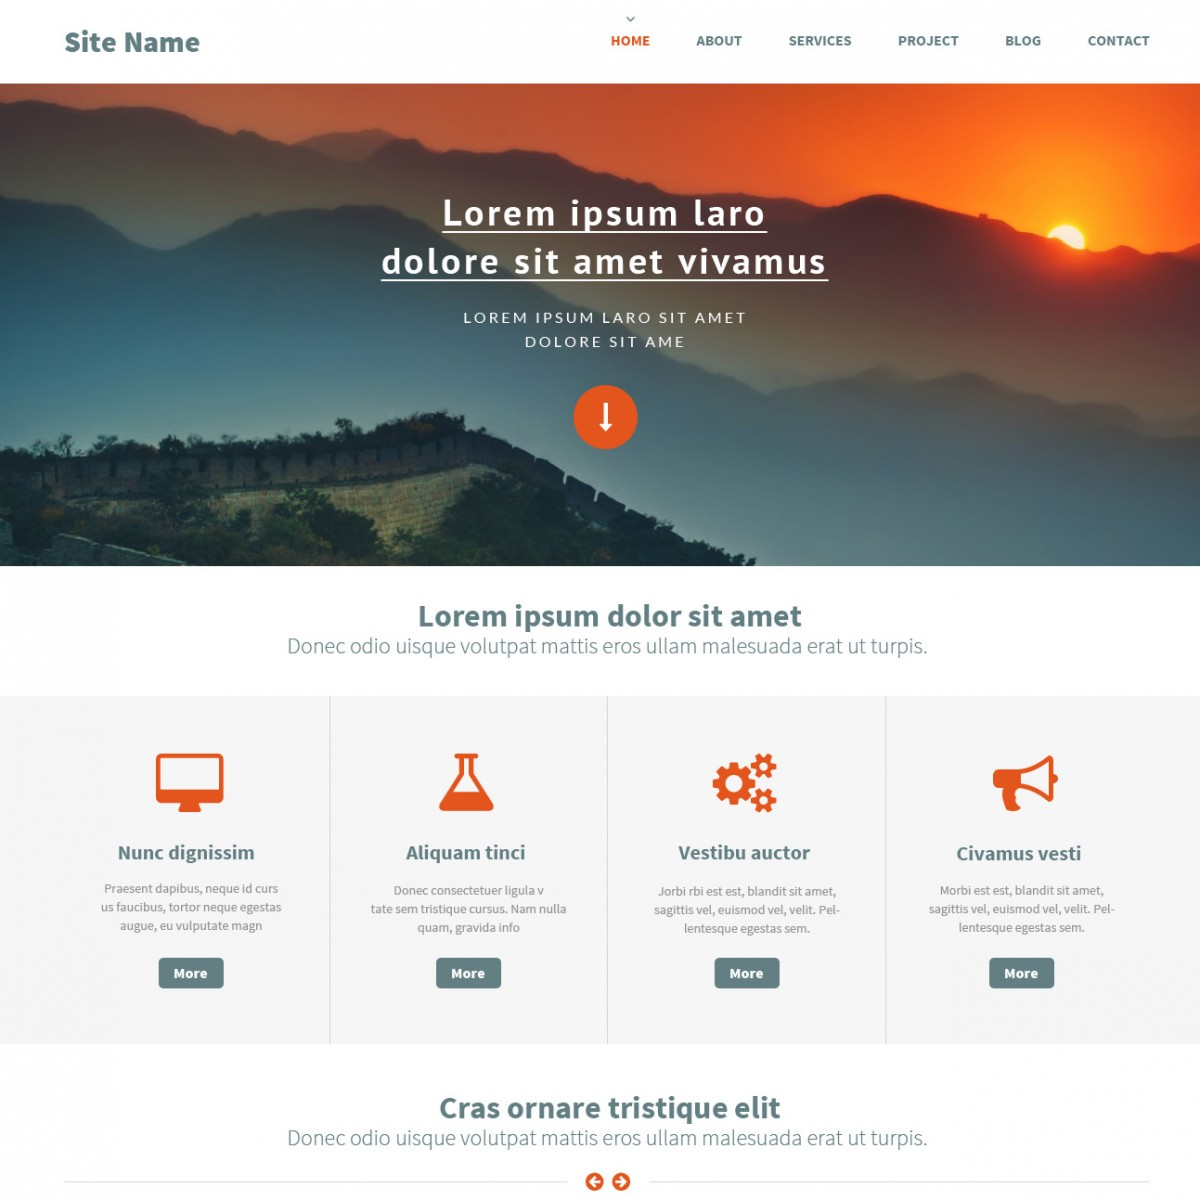 Website Templates Fotolipcom Rich image and wallpaper